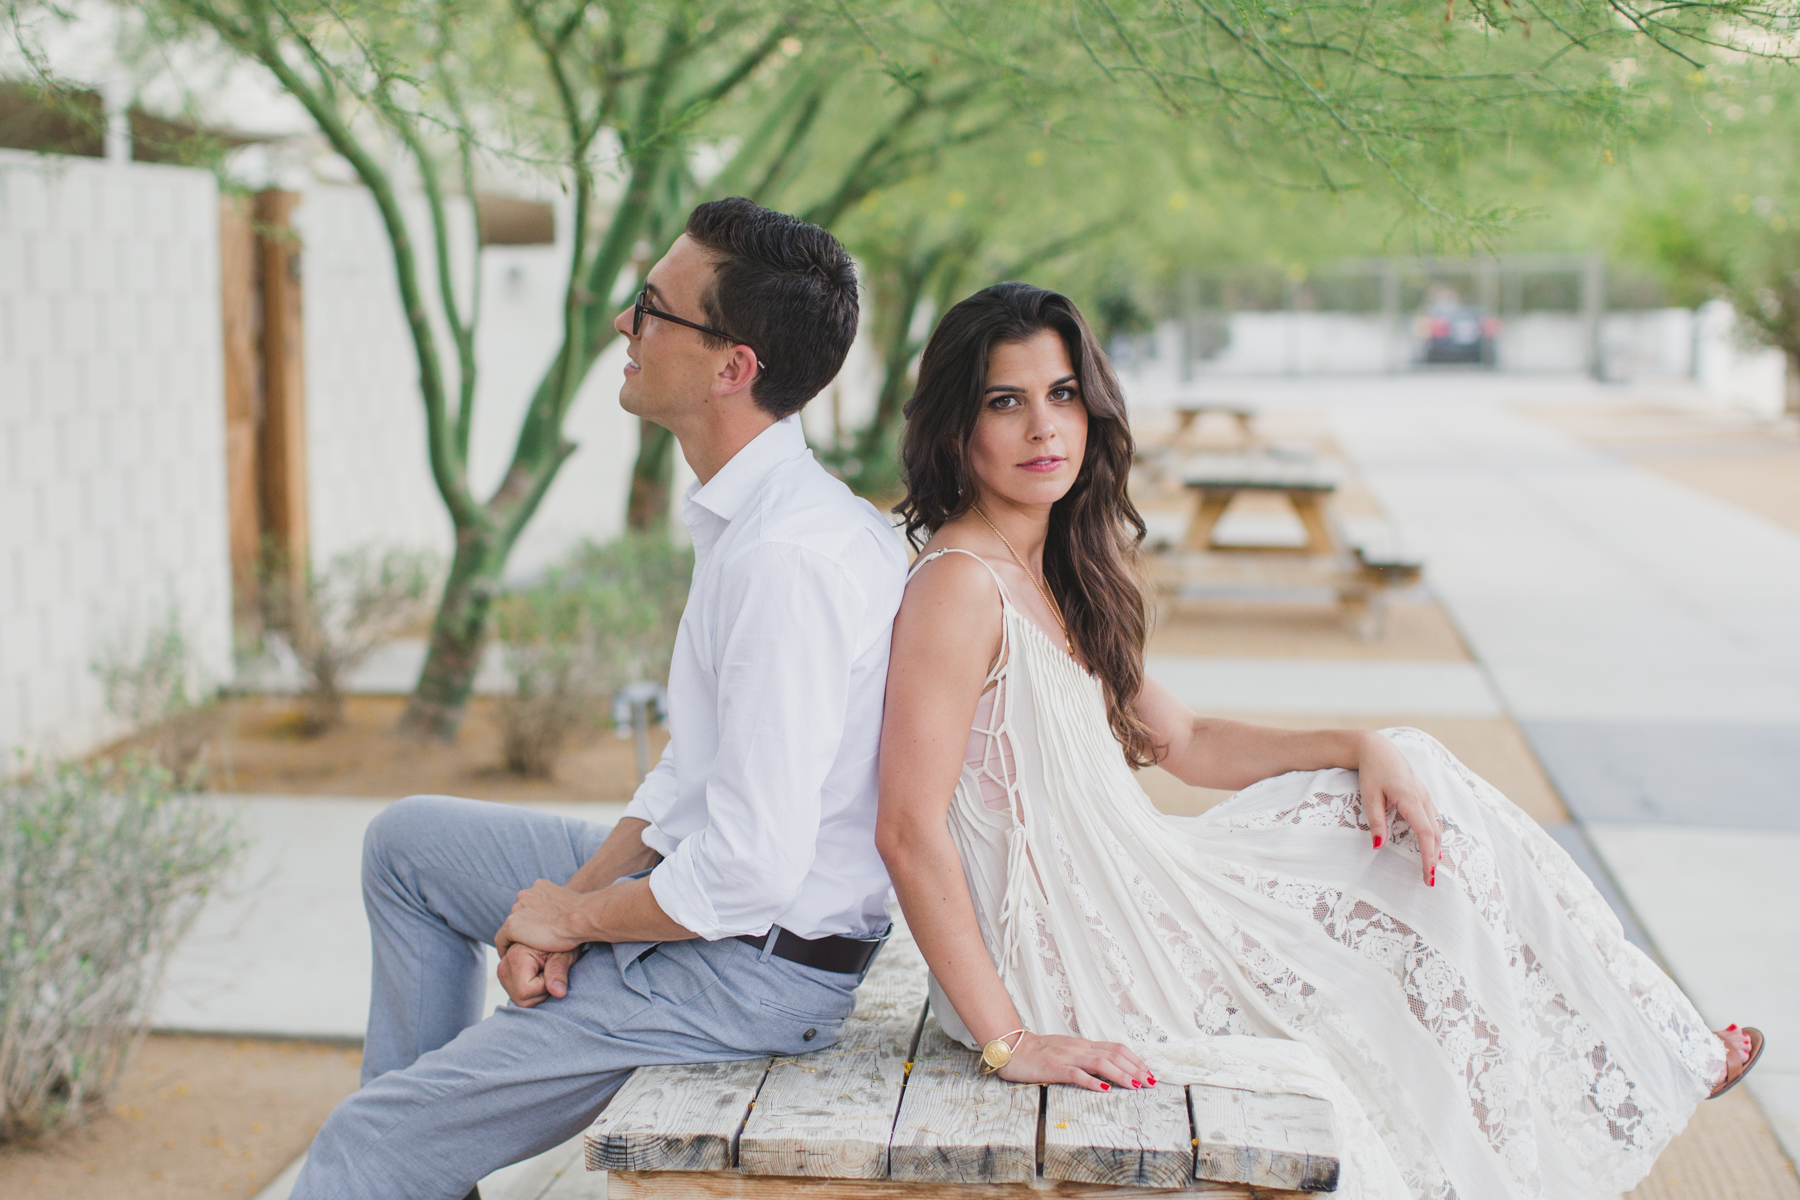 All_Days_Wonder_Palm_Springs_Engagement-65.jpg